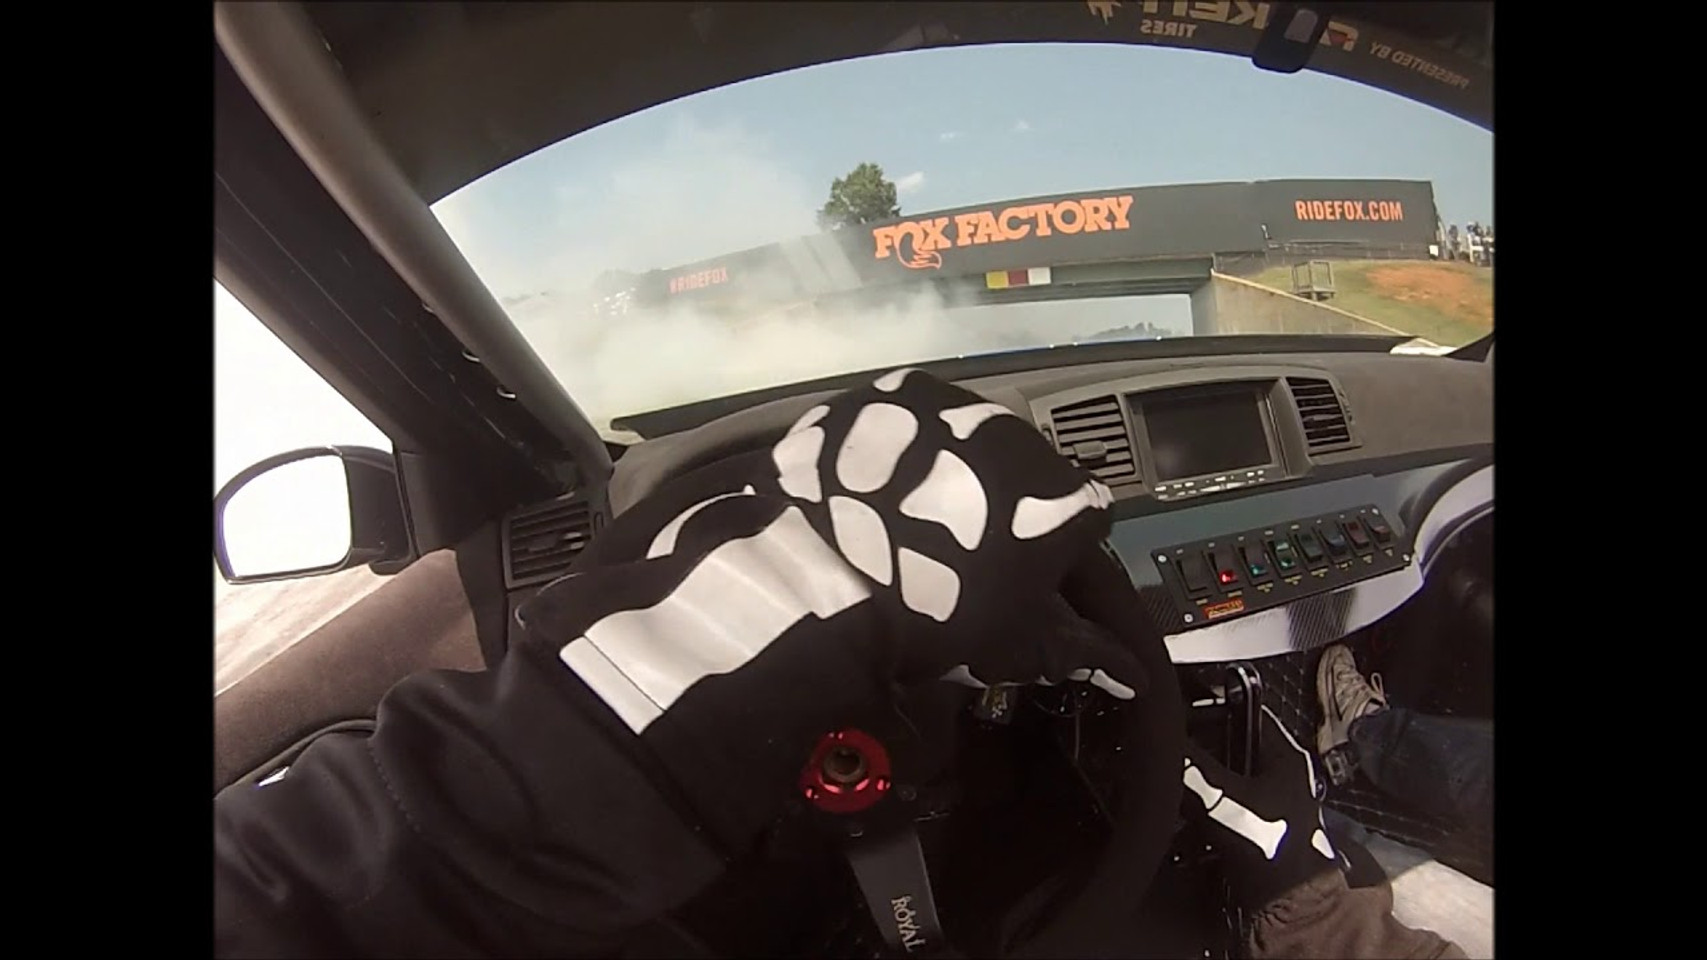 Drift Taxi - Barry Clapp - Infinity M67 - Gridlife